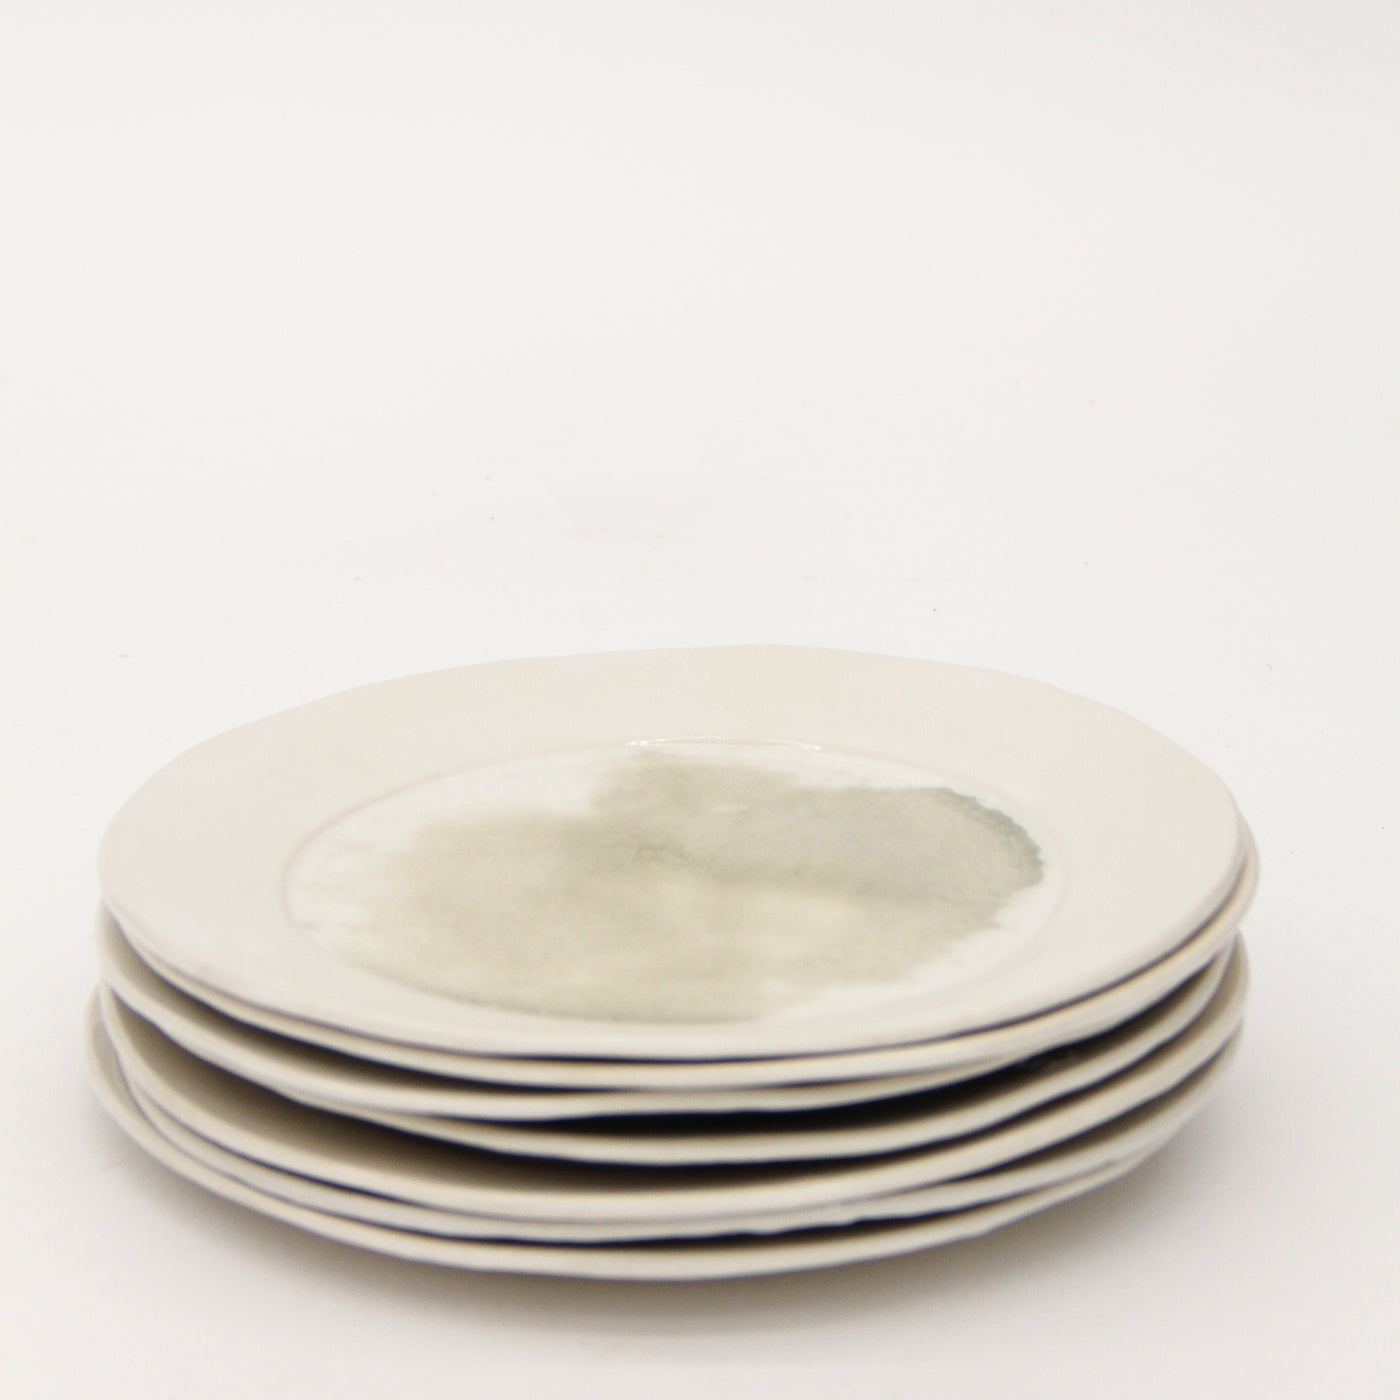 White Crushed Glass Plate